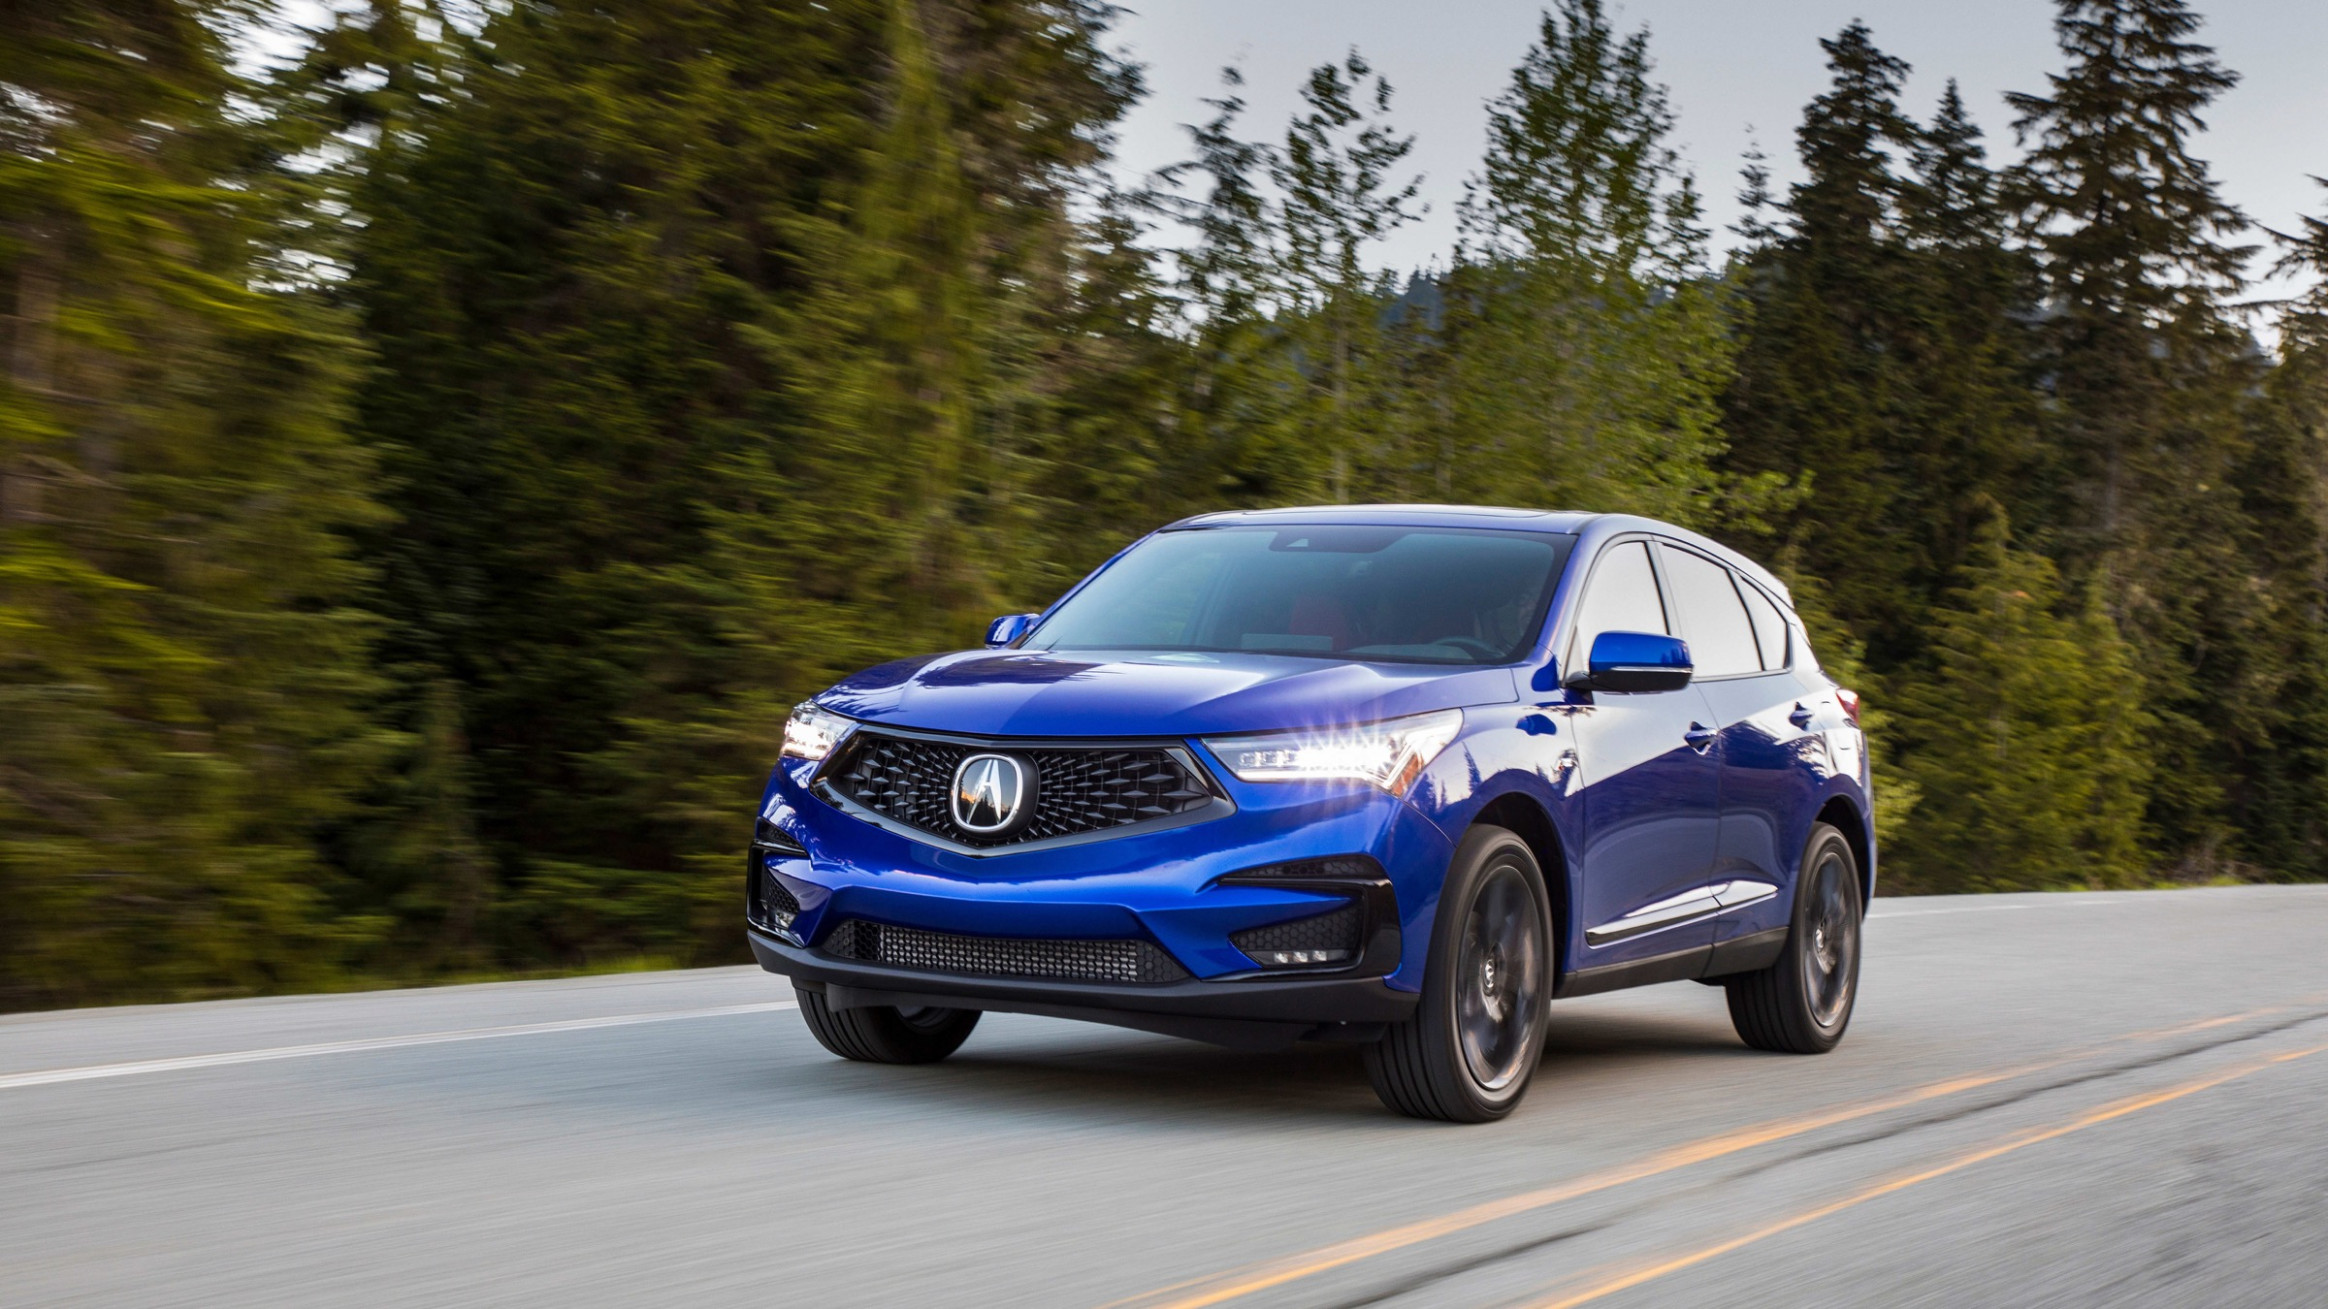 10 Acura RDX Review and Buying Guide | Specs, features, photos ..